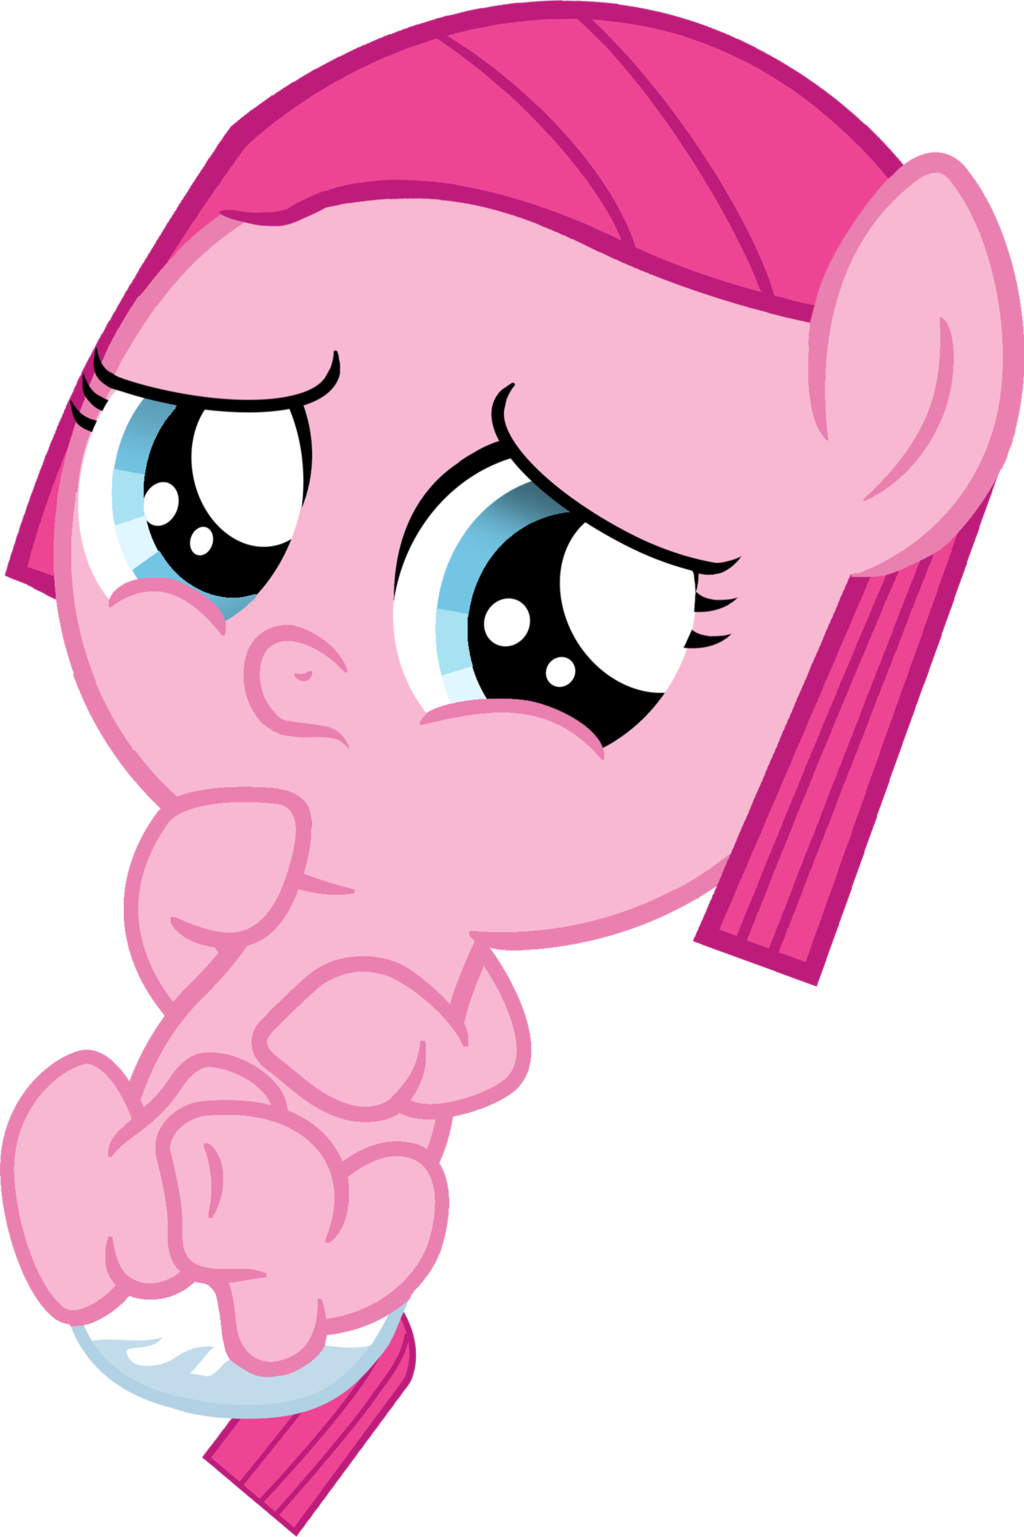 clip transparent library Pinkie pie by shutterflyeqd. Vector baby cute